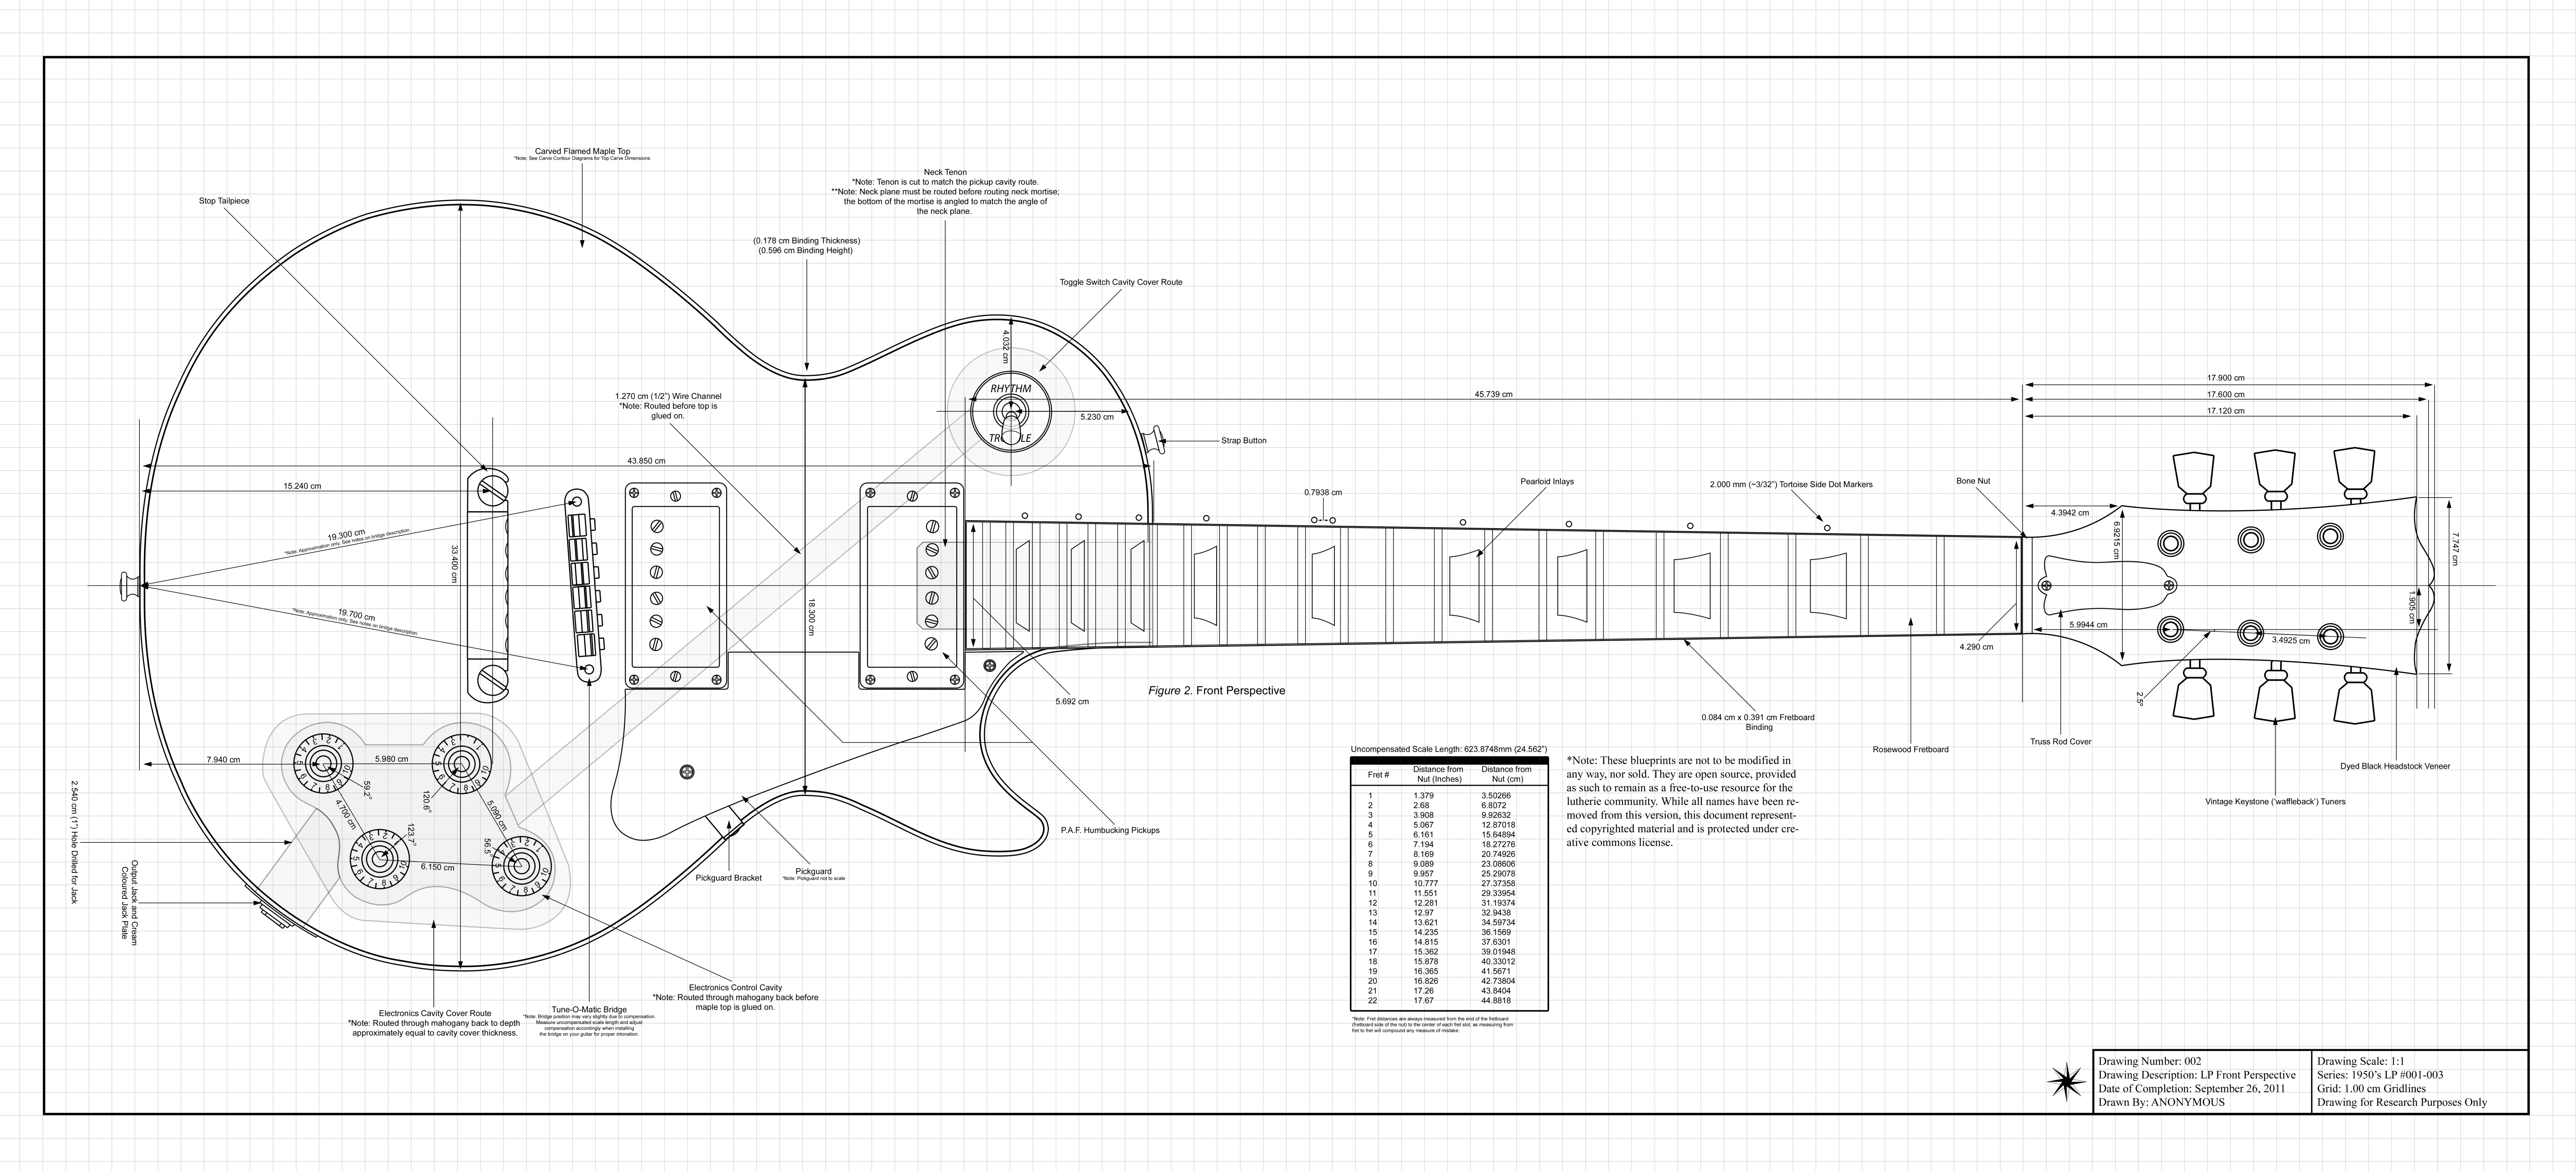 Gibson Les Paul Dimensions 66003000 Guitar Kits Building And Wiring Diagram For